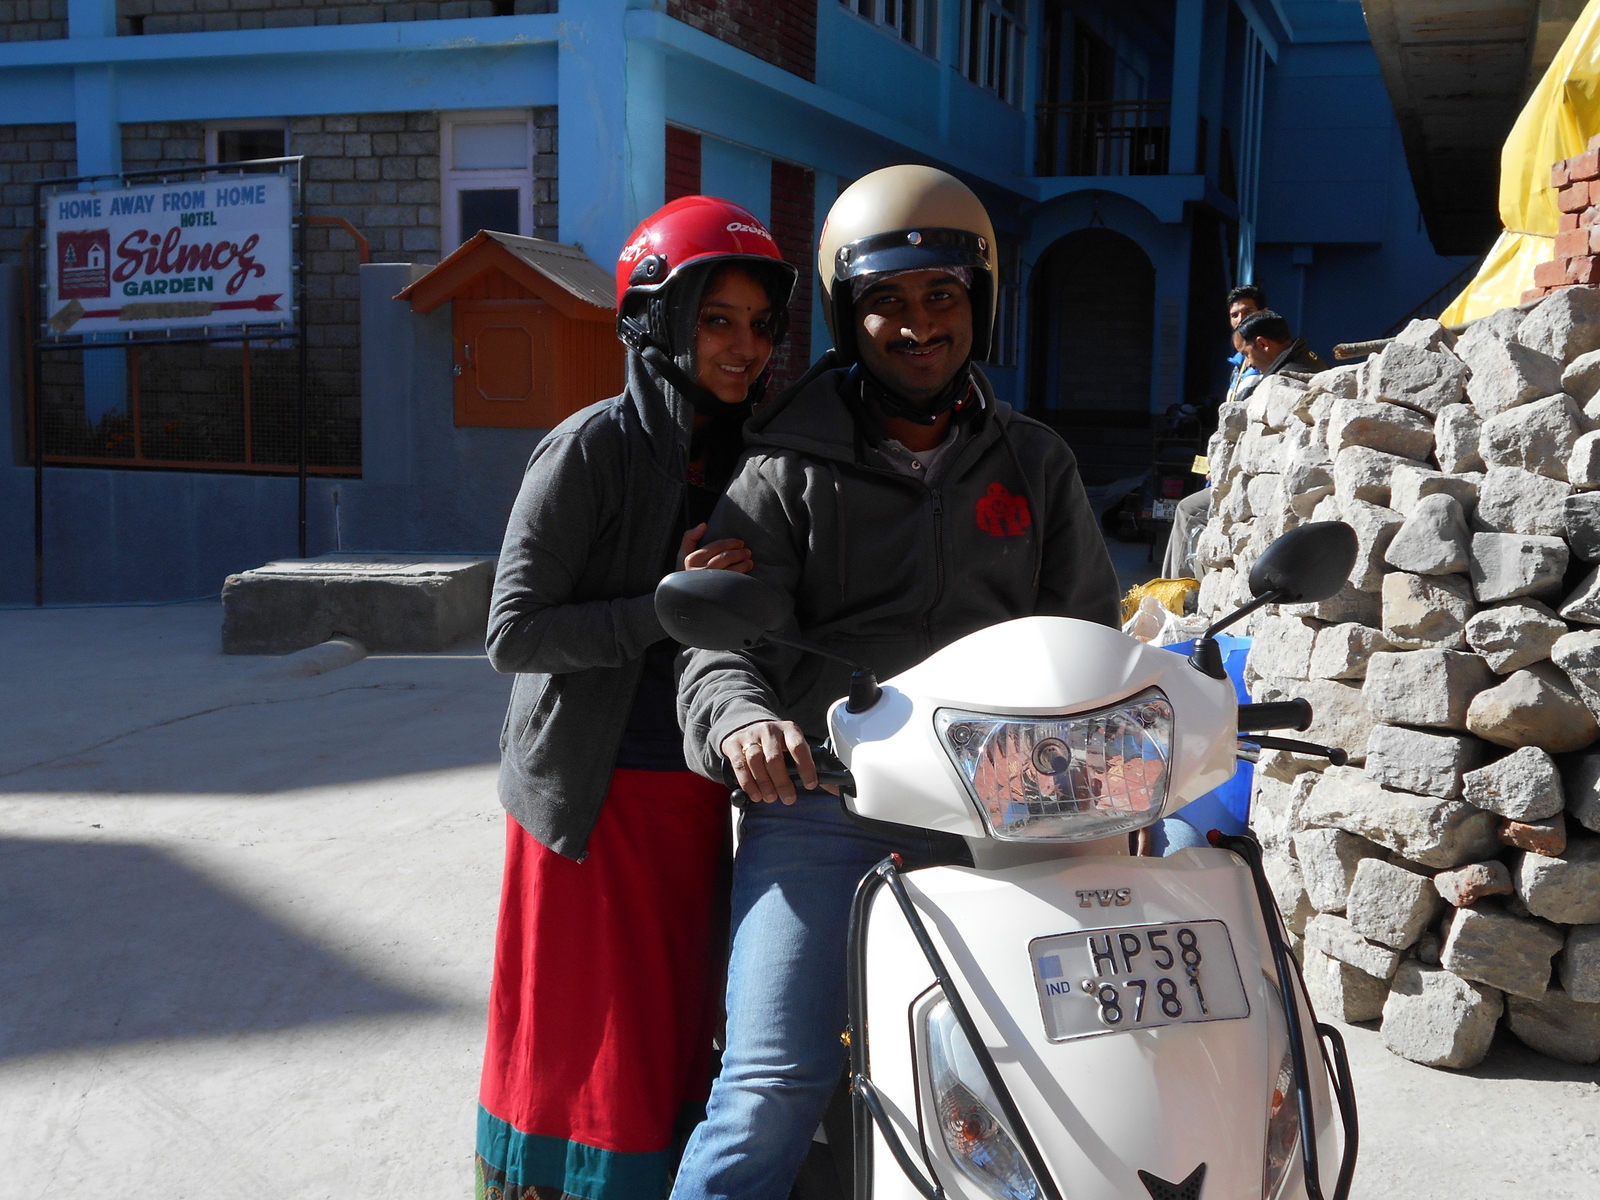 manali-bike-scooter-rentals-1